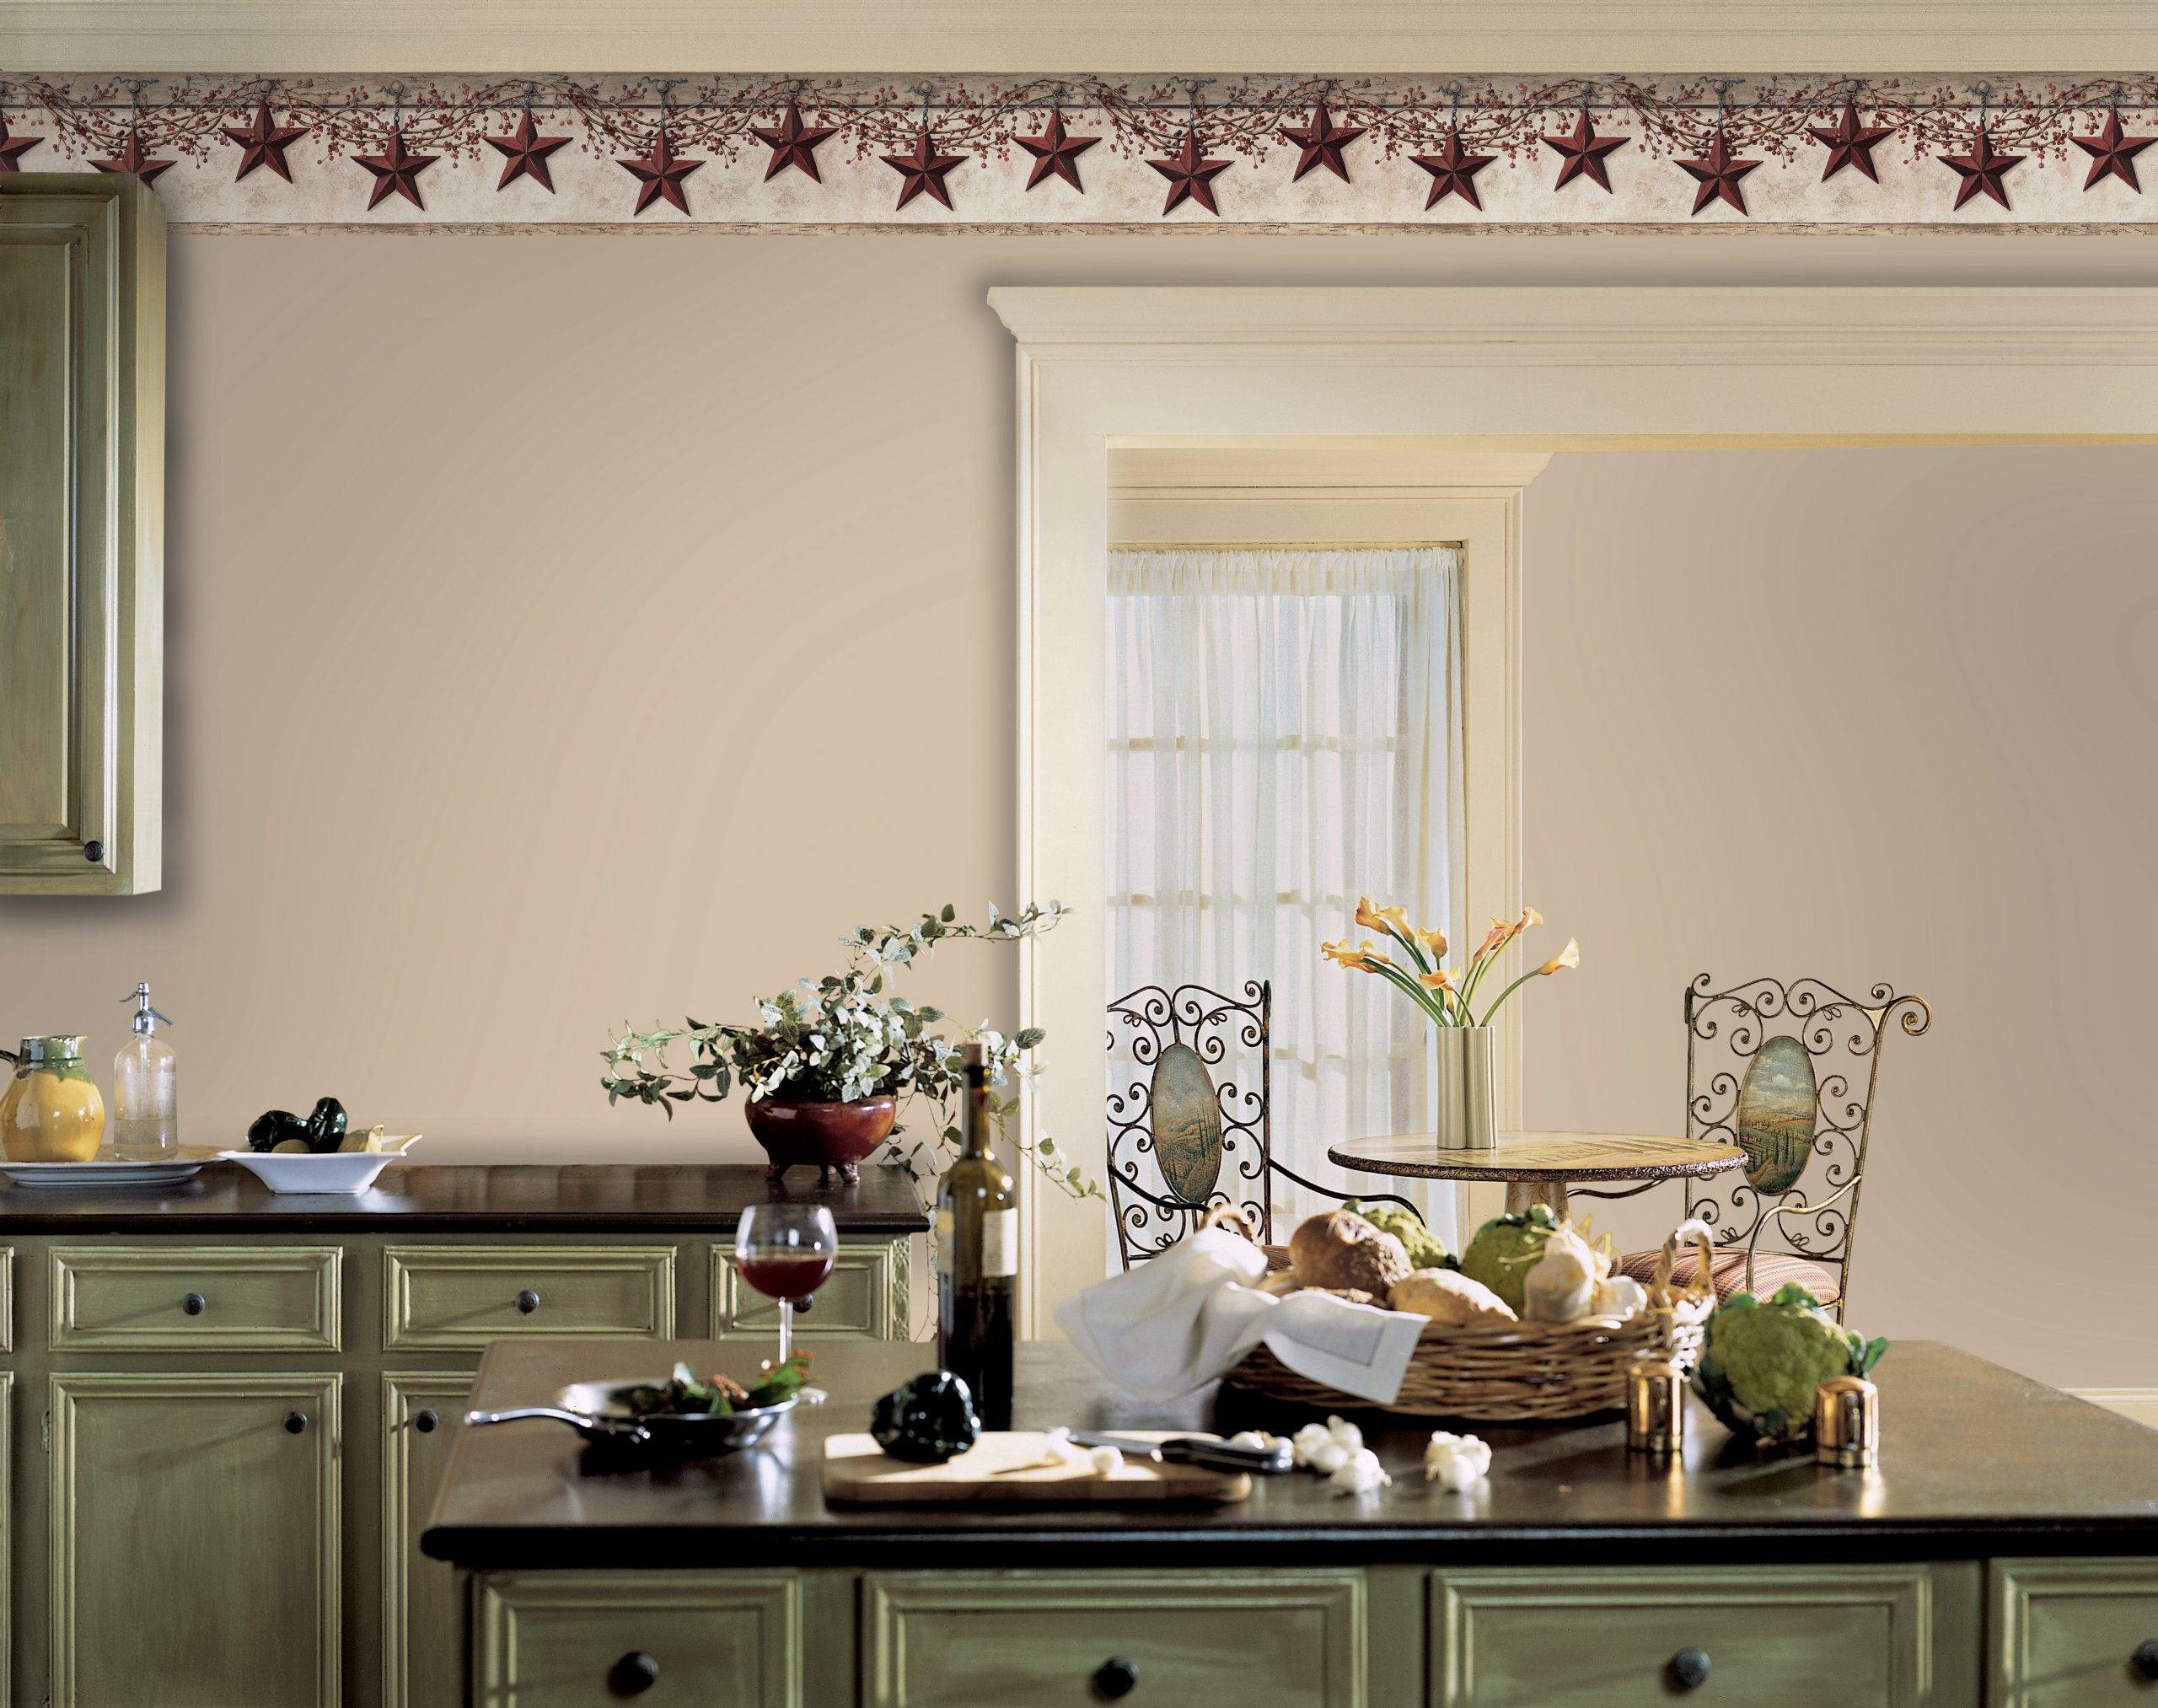 York Wallcoverings Best Of Country HK4664BD Hanging Star Border, Off White/Khaki by York Wallcoverings (Image #2)